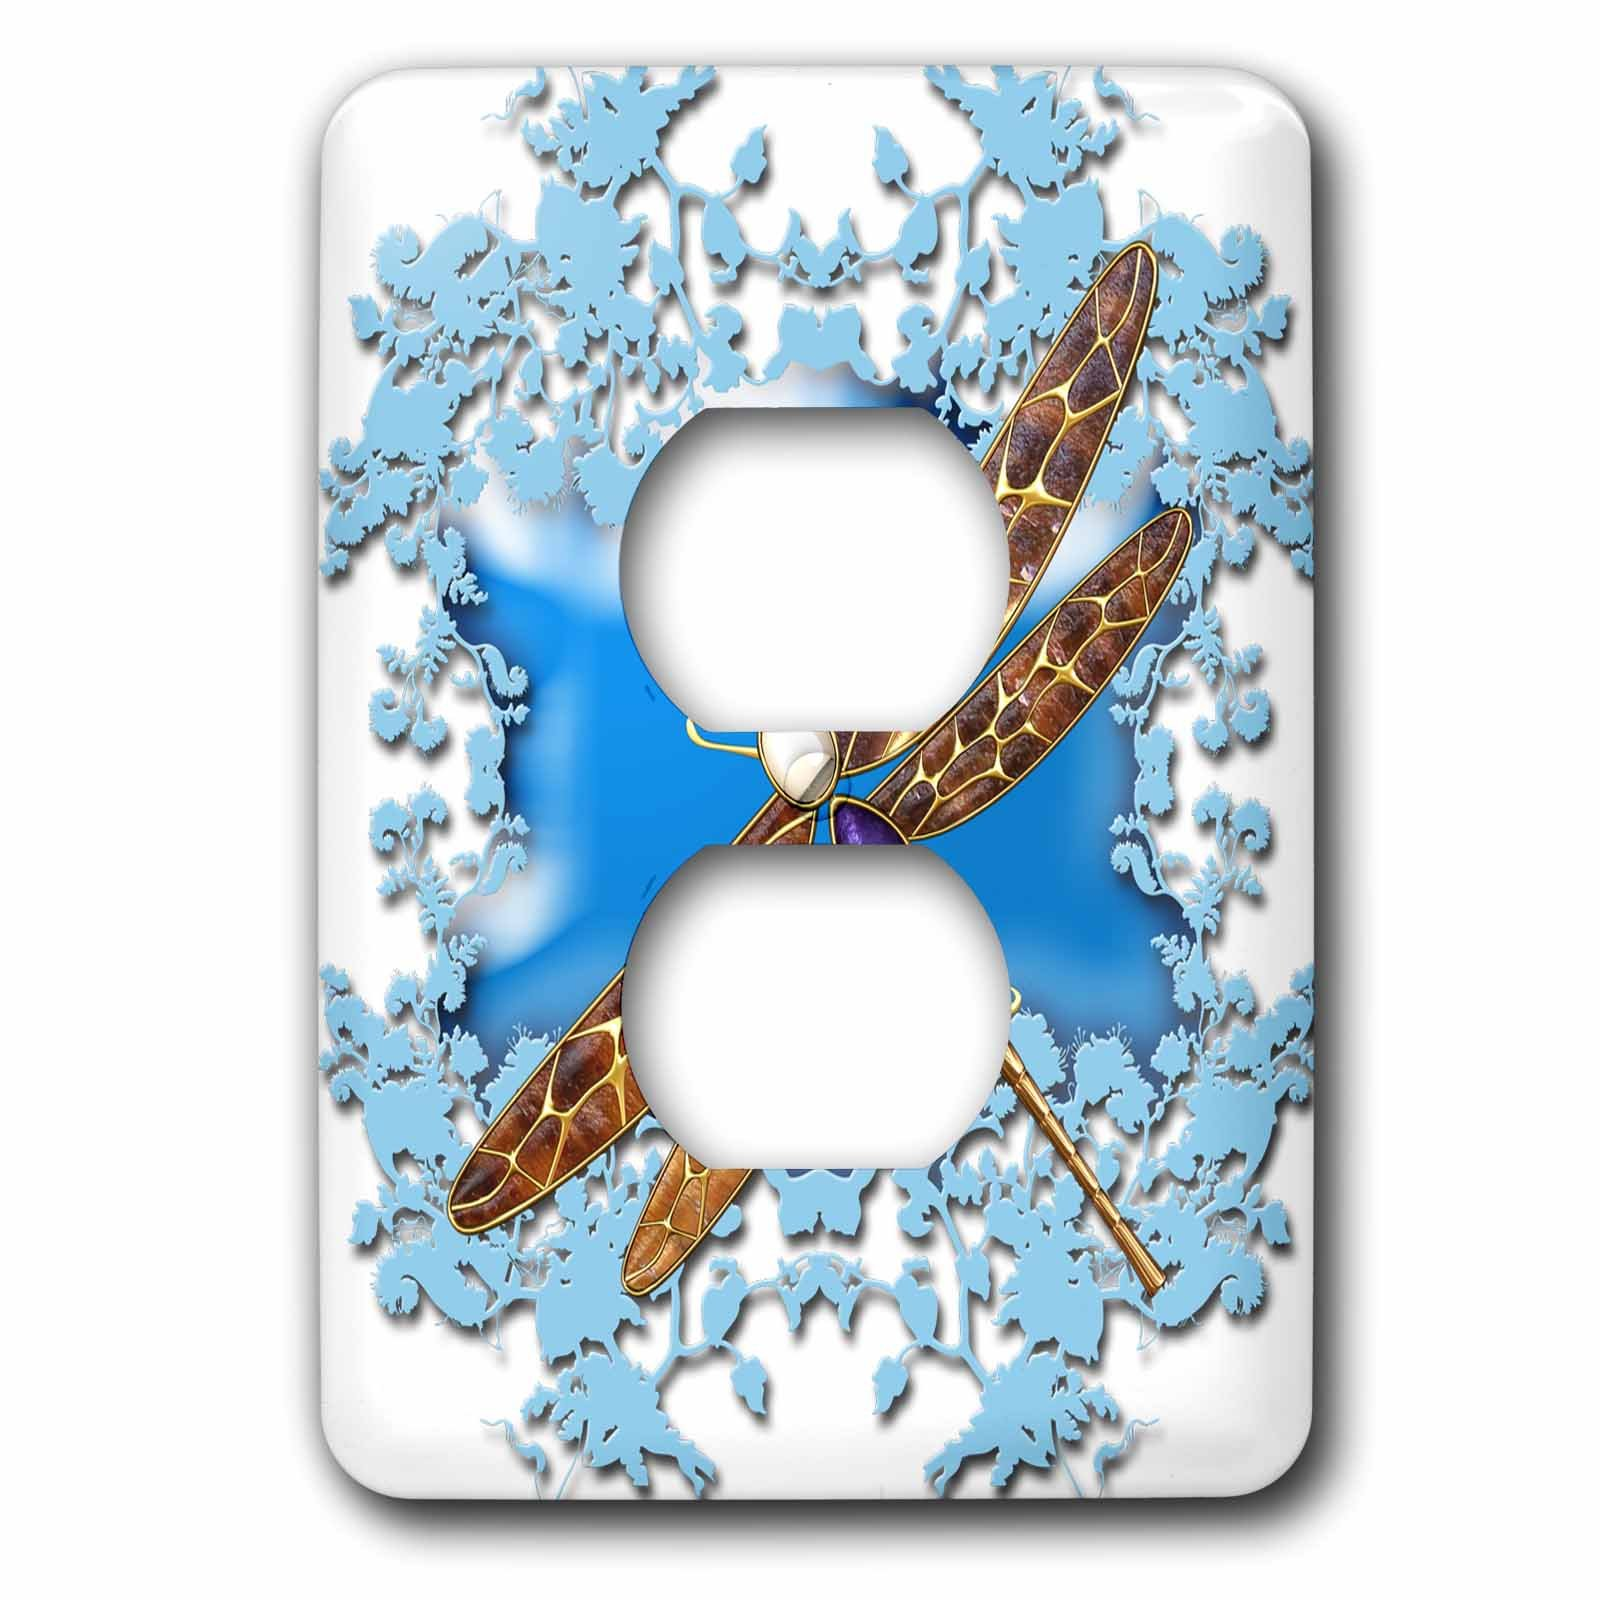 3dRose Fantasy - Dragonfly with patterned bronze wings , blue clouds - Light Switch Covers - 2 plug outlet cover (lsp_265969_6)